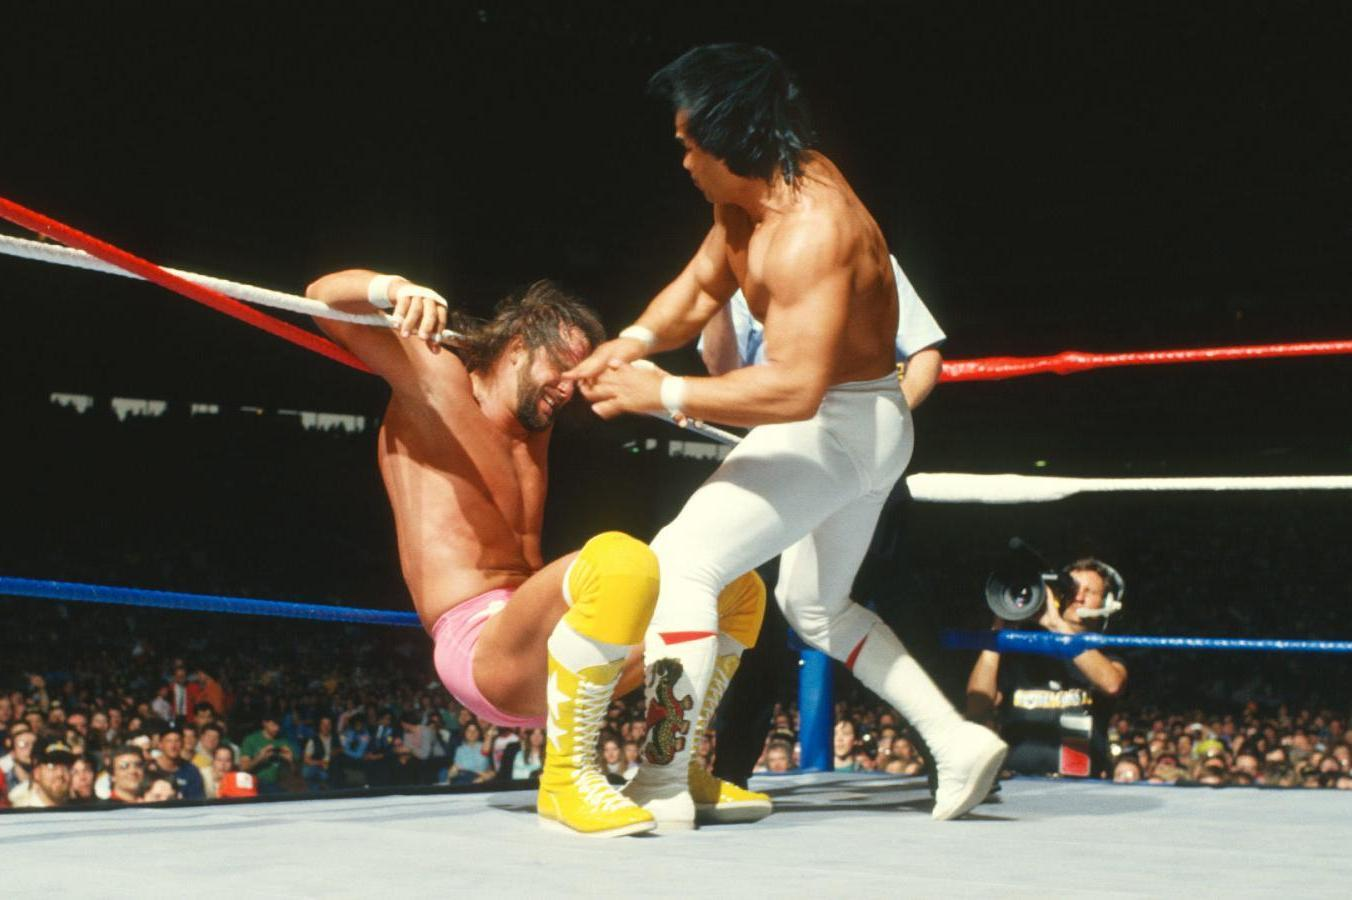 PTW Wrestling Podcast Watchalong: 'Macho Man' Randy Savage vs. Ricky 'The Dragon' Steamboat, WrestleMania III